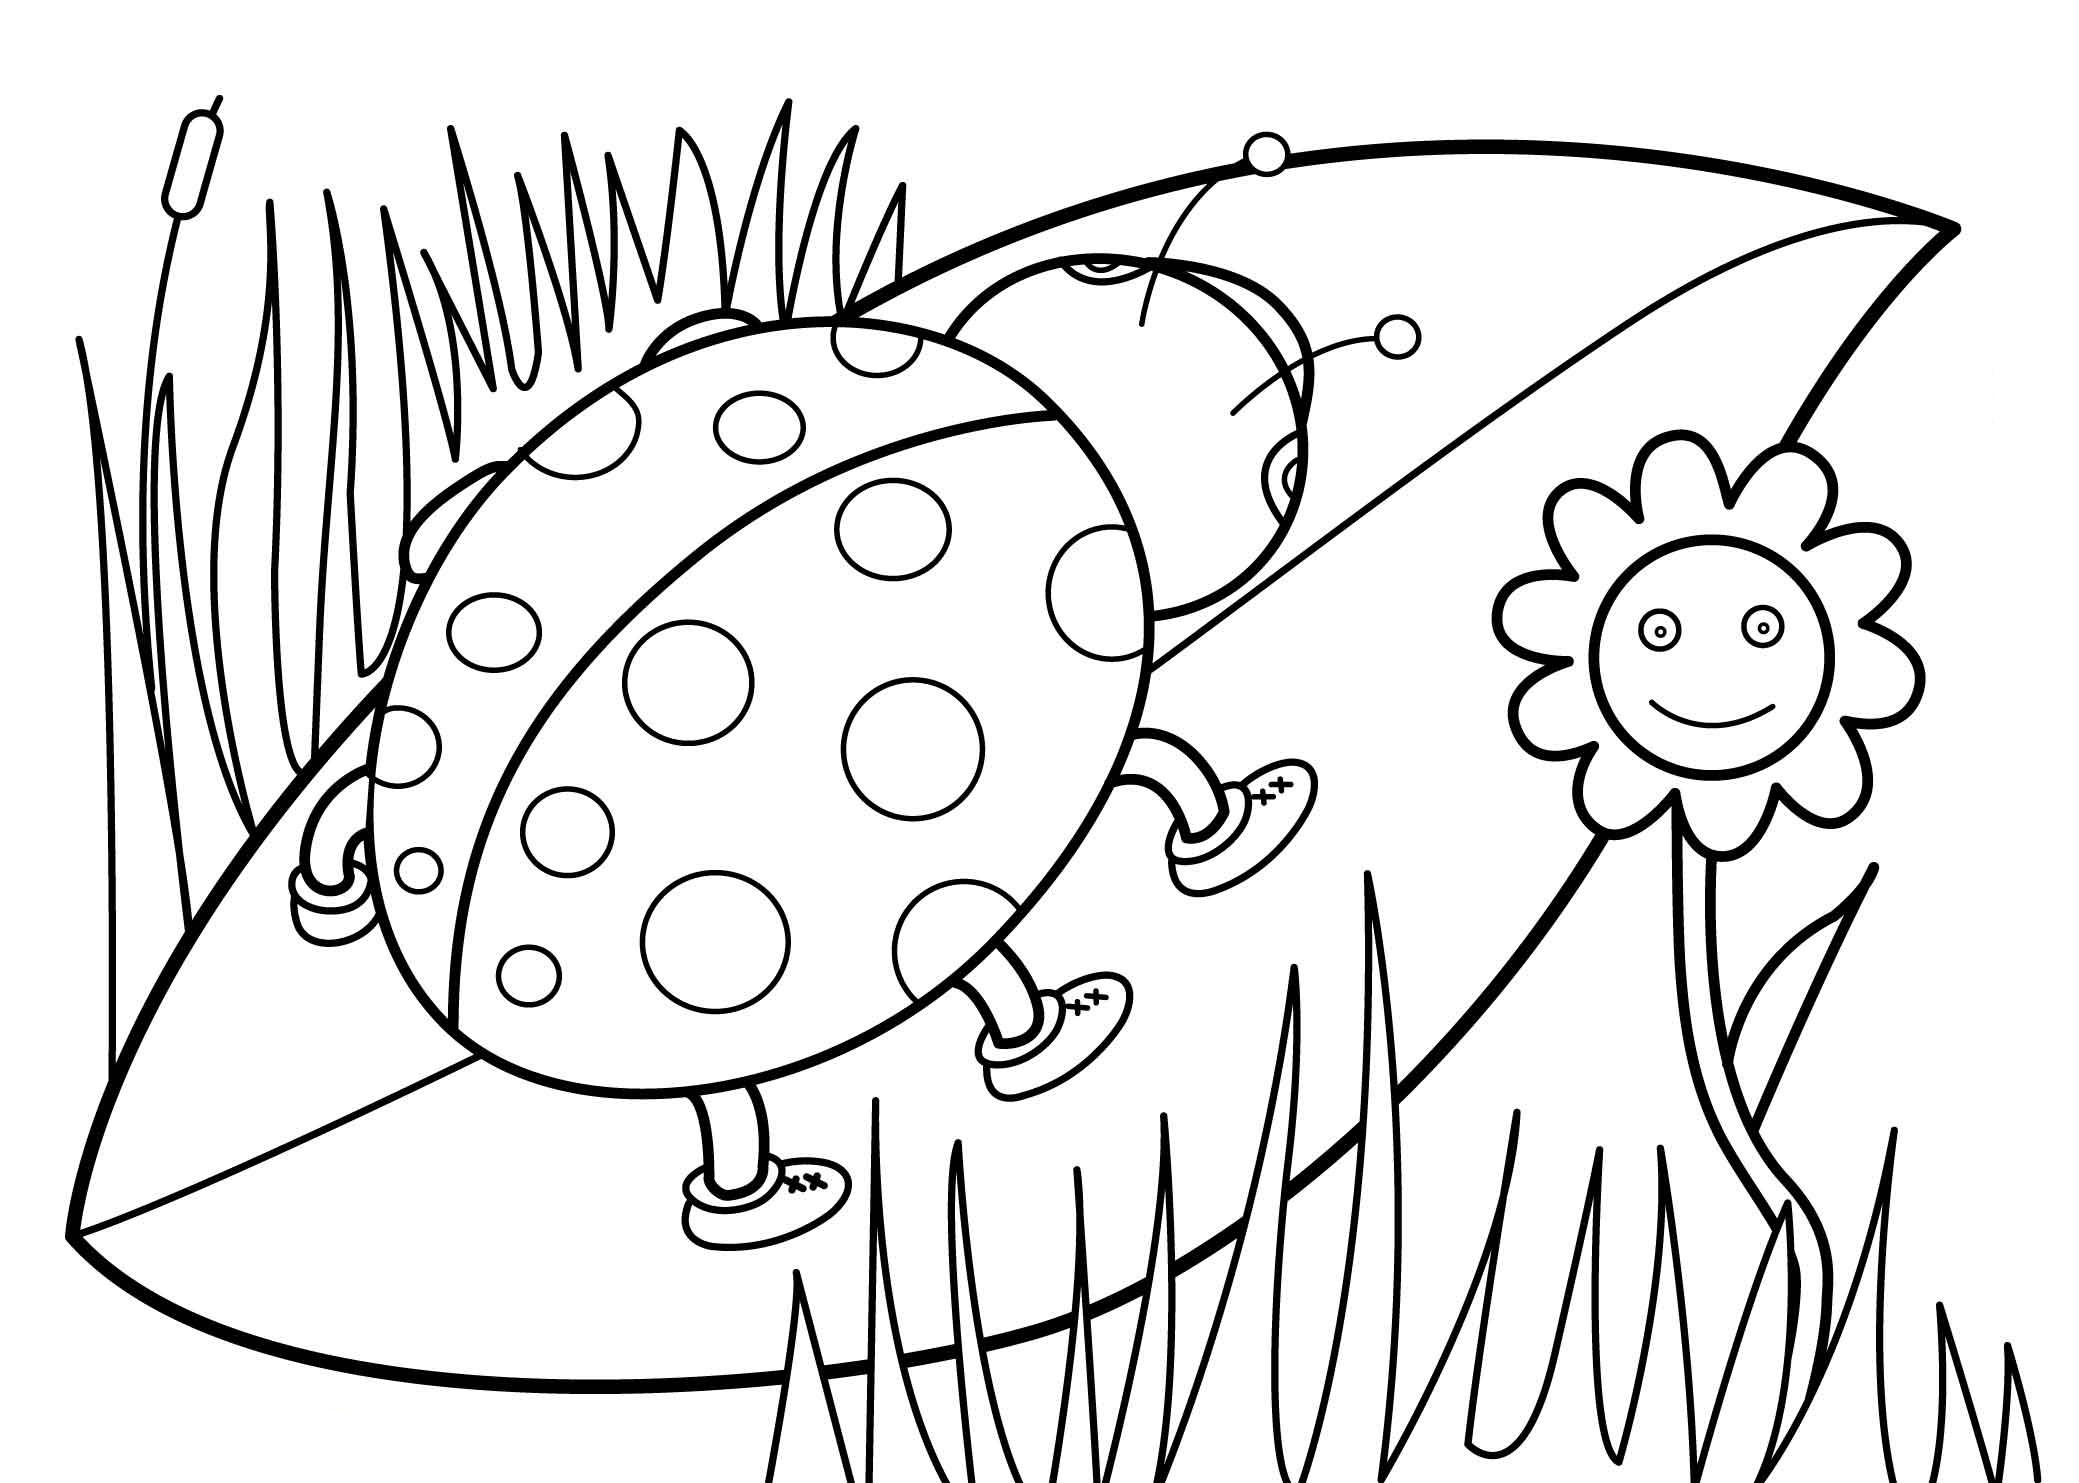 coloring pages for children free fish coloring pages for kids children coloring pages for